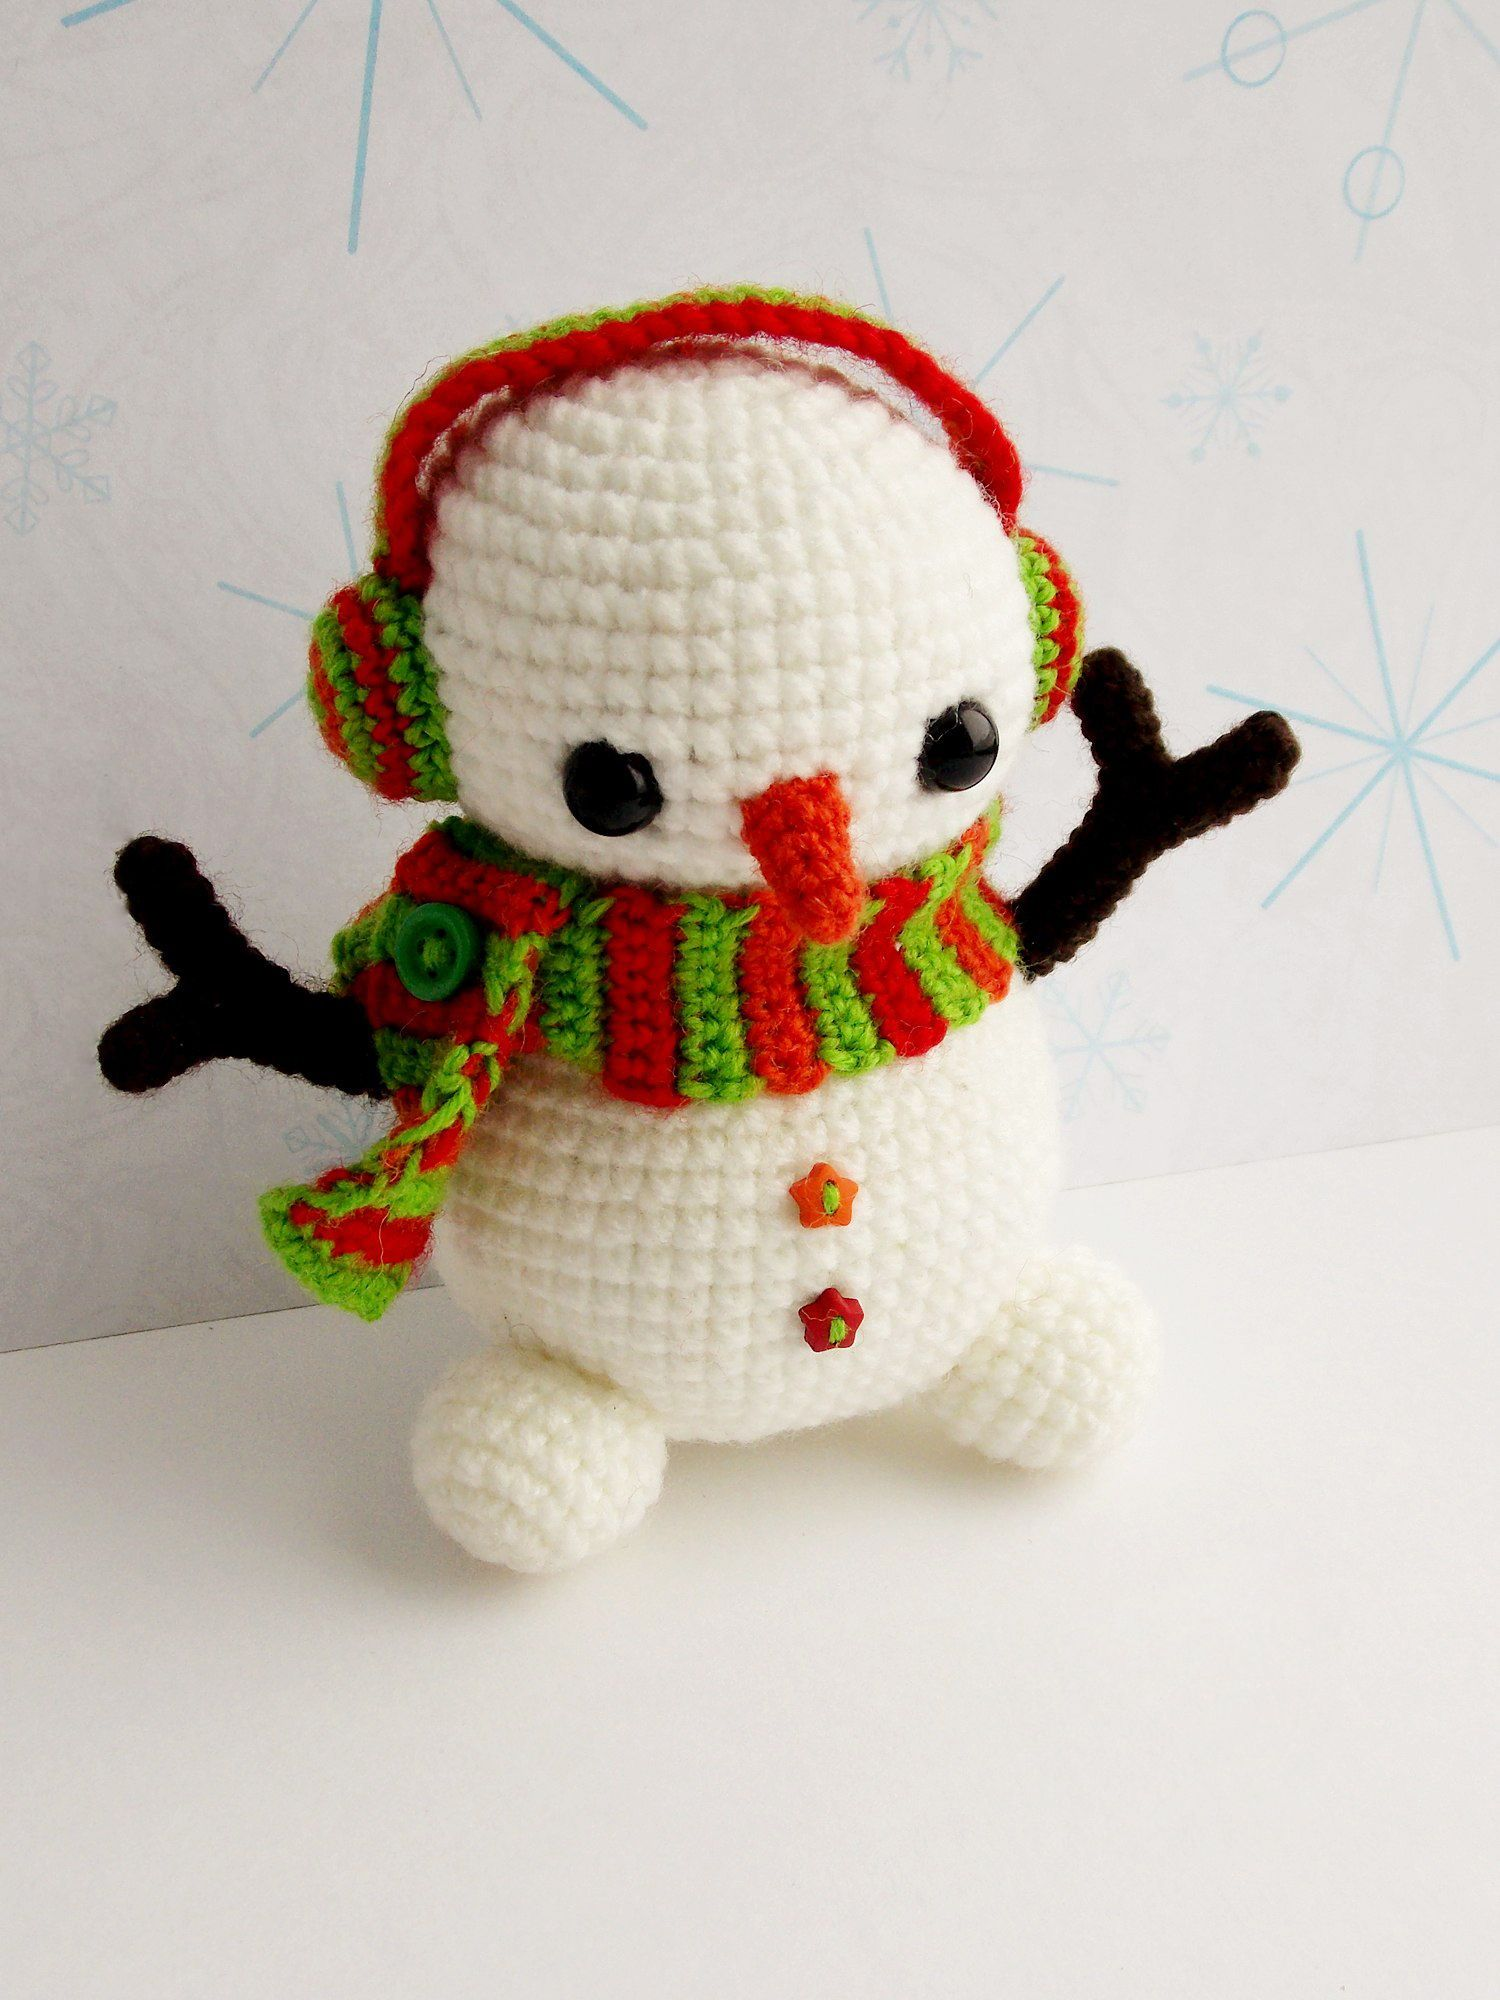 Amigurumi Today Free Pattern Ideas for Android - APK Download | 2000x1500